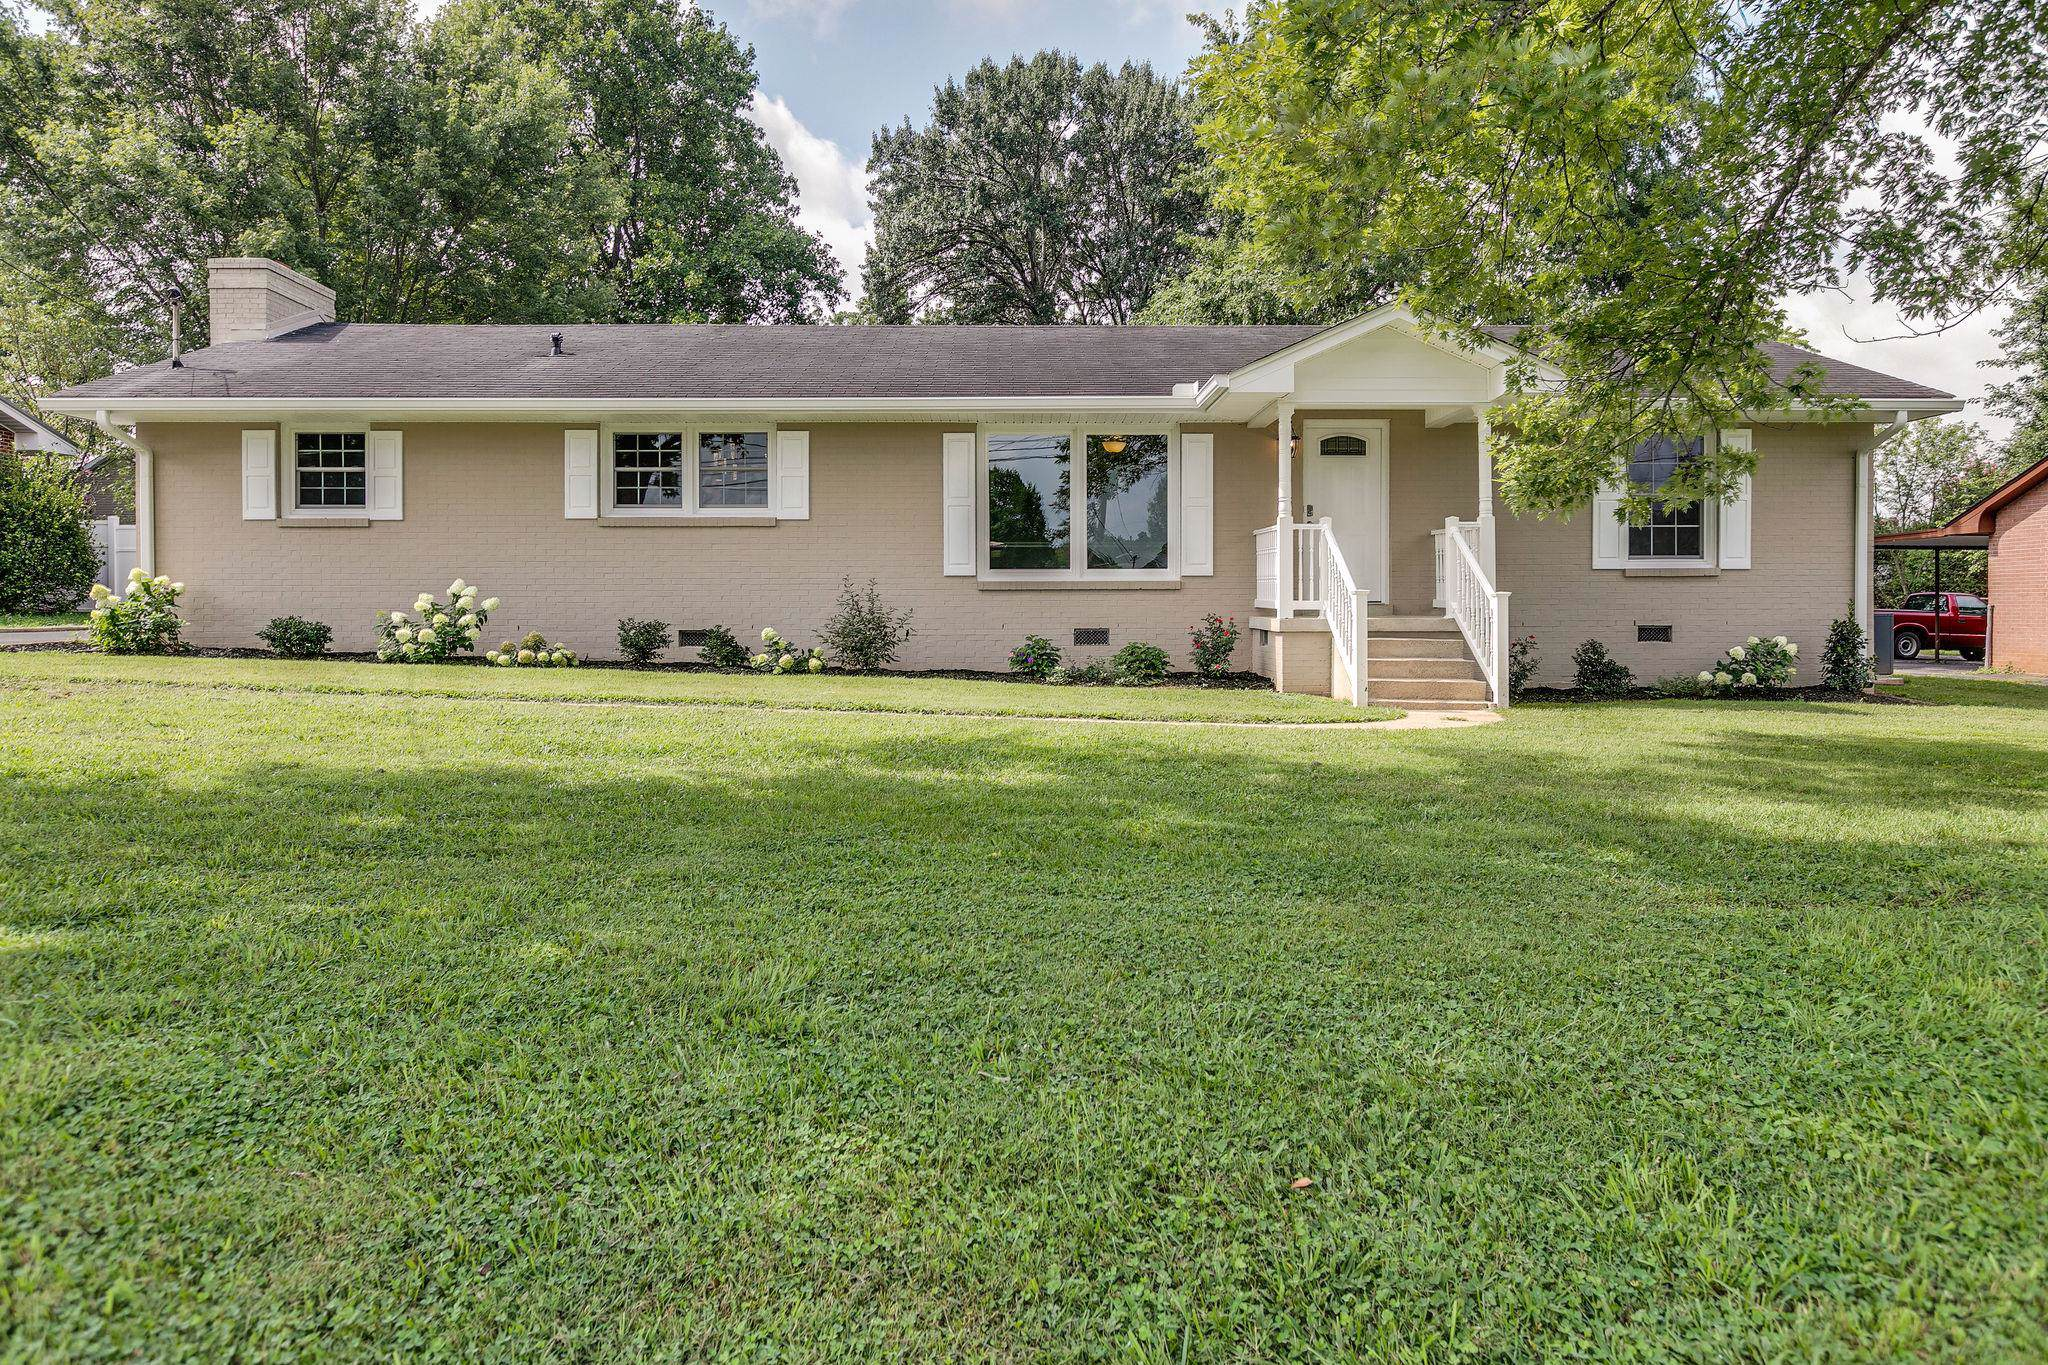 106 Lee, Shelbyville, TN 37160 (MLS #RTC2049675) :: Exit Realty Music City